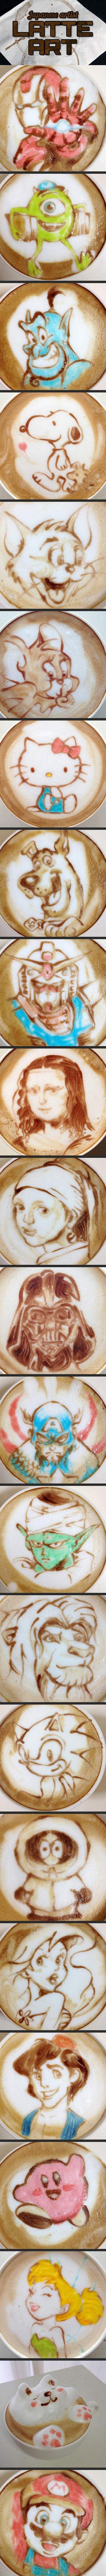 Japanese Latte Art Takes It To A Whole New Level